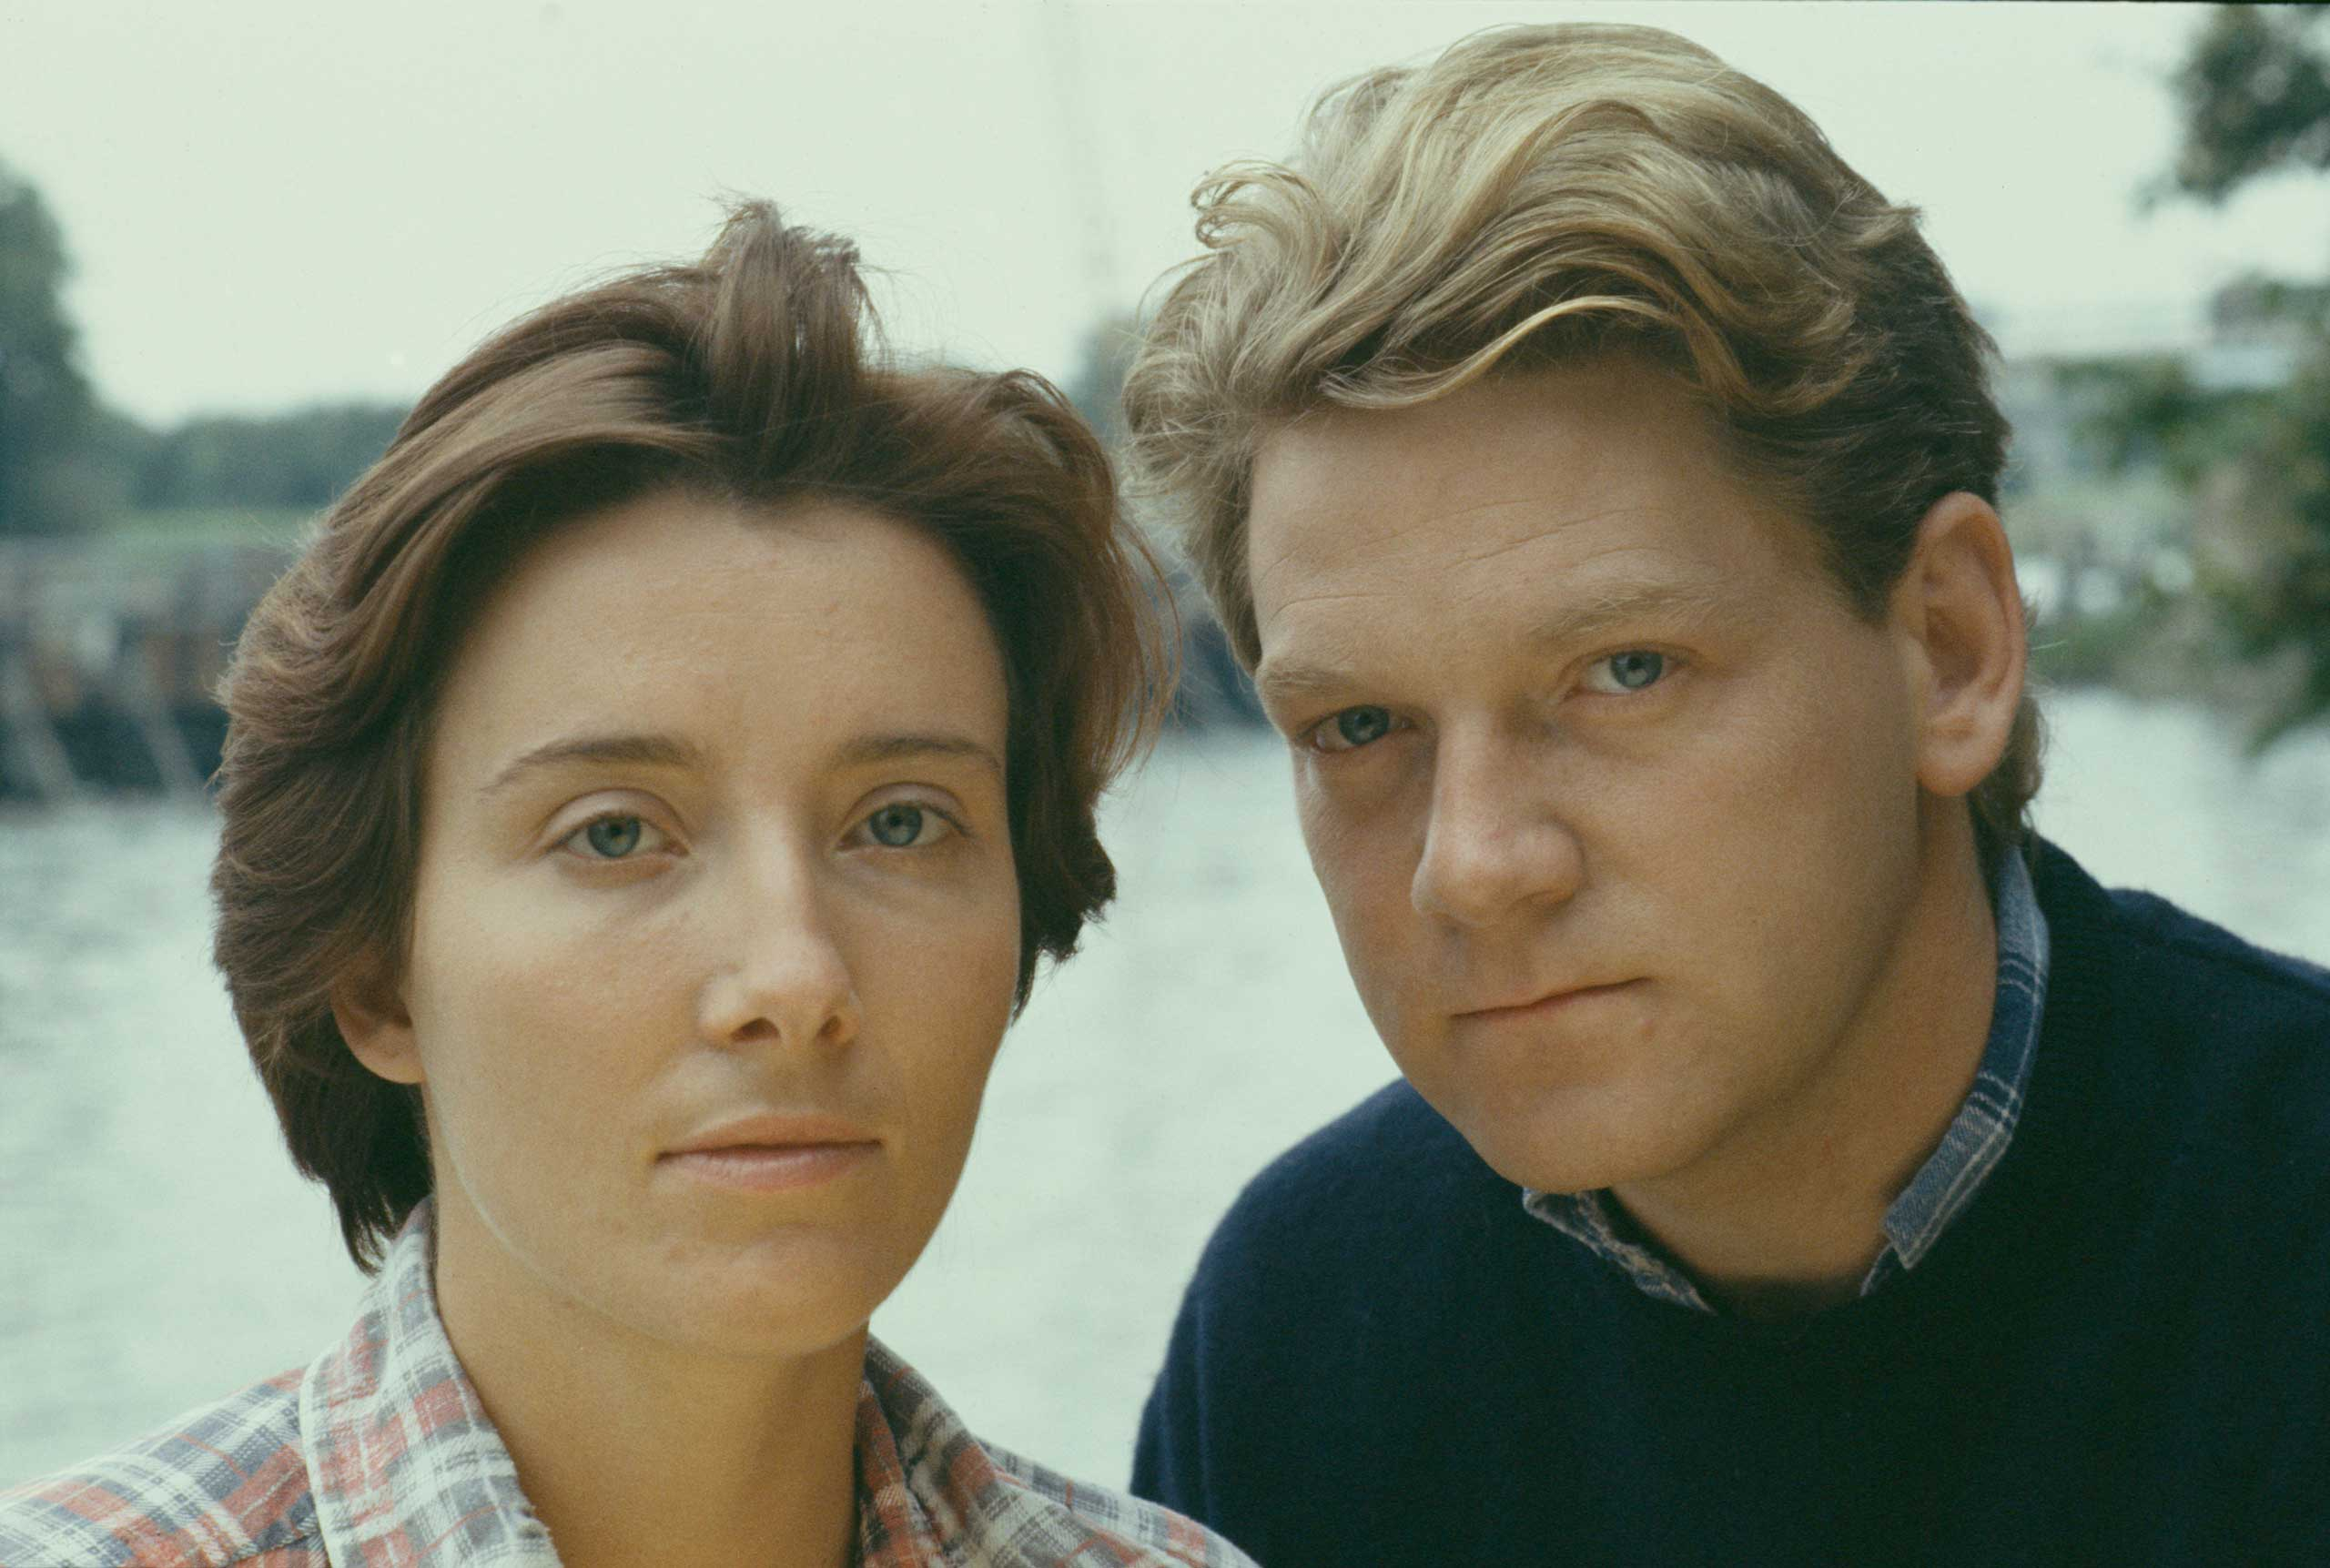 <b>Emma Thompson and Kenneth Brannagh</b>Photographed for TV Times in 1989.                                   The young couple, who married that year, were snapped for an ITV adaptation of <i>Look Back in Anger</i>.